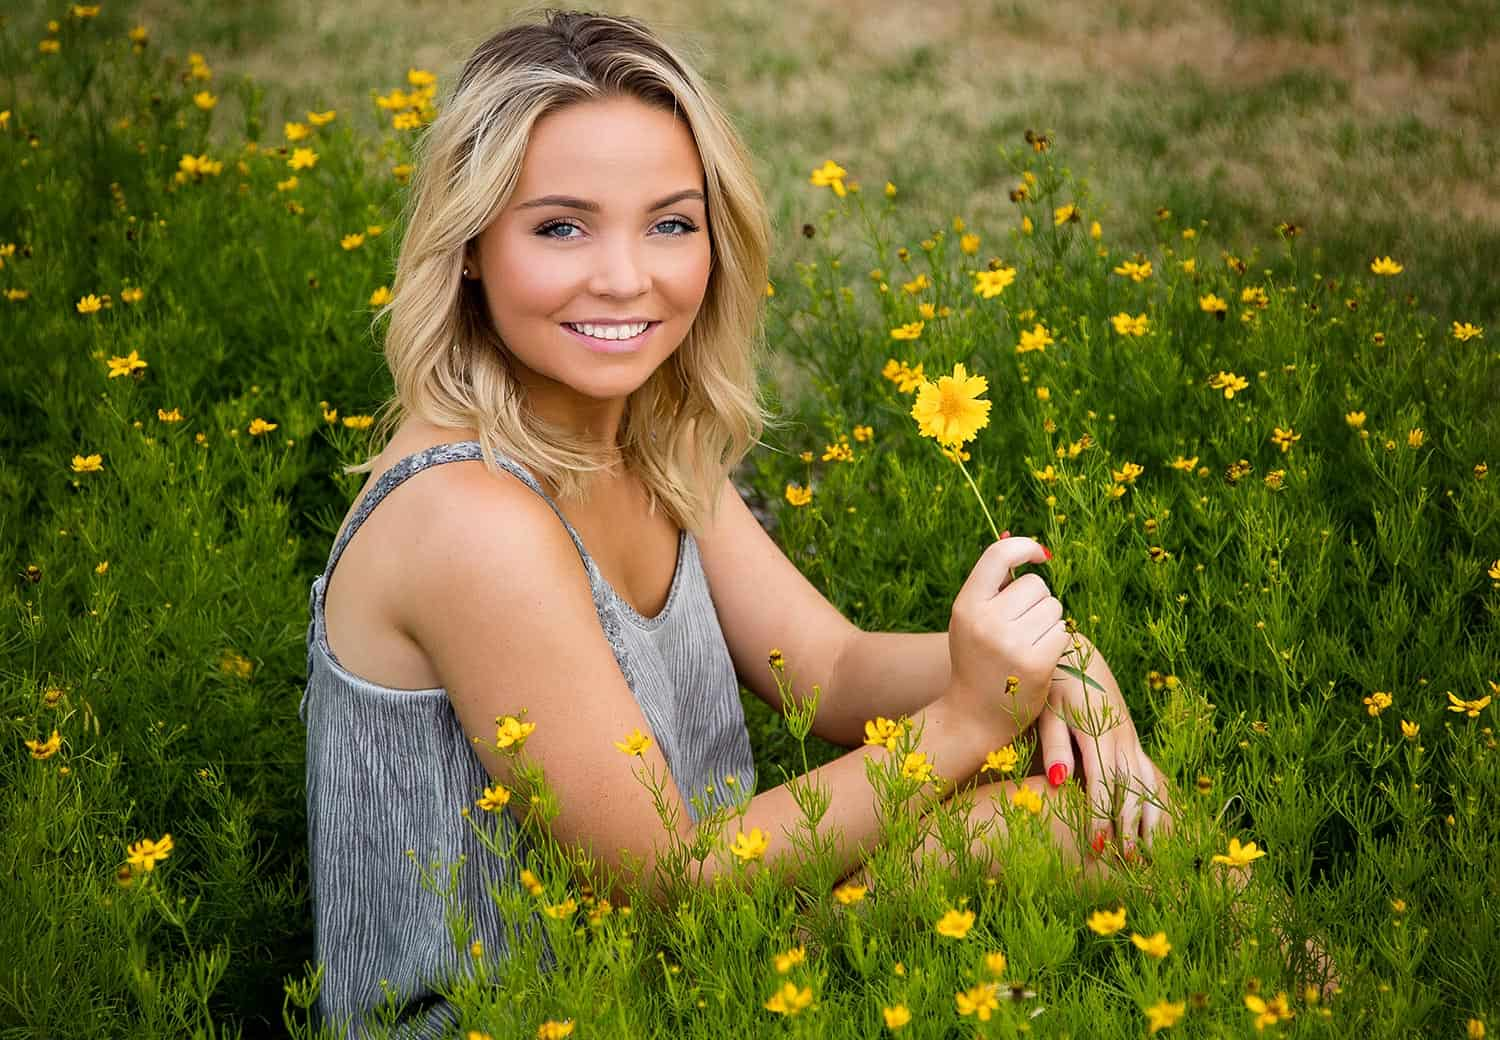 nfocus photos - senior photos in Crystal Lake and Hampshire, IL